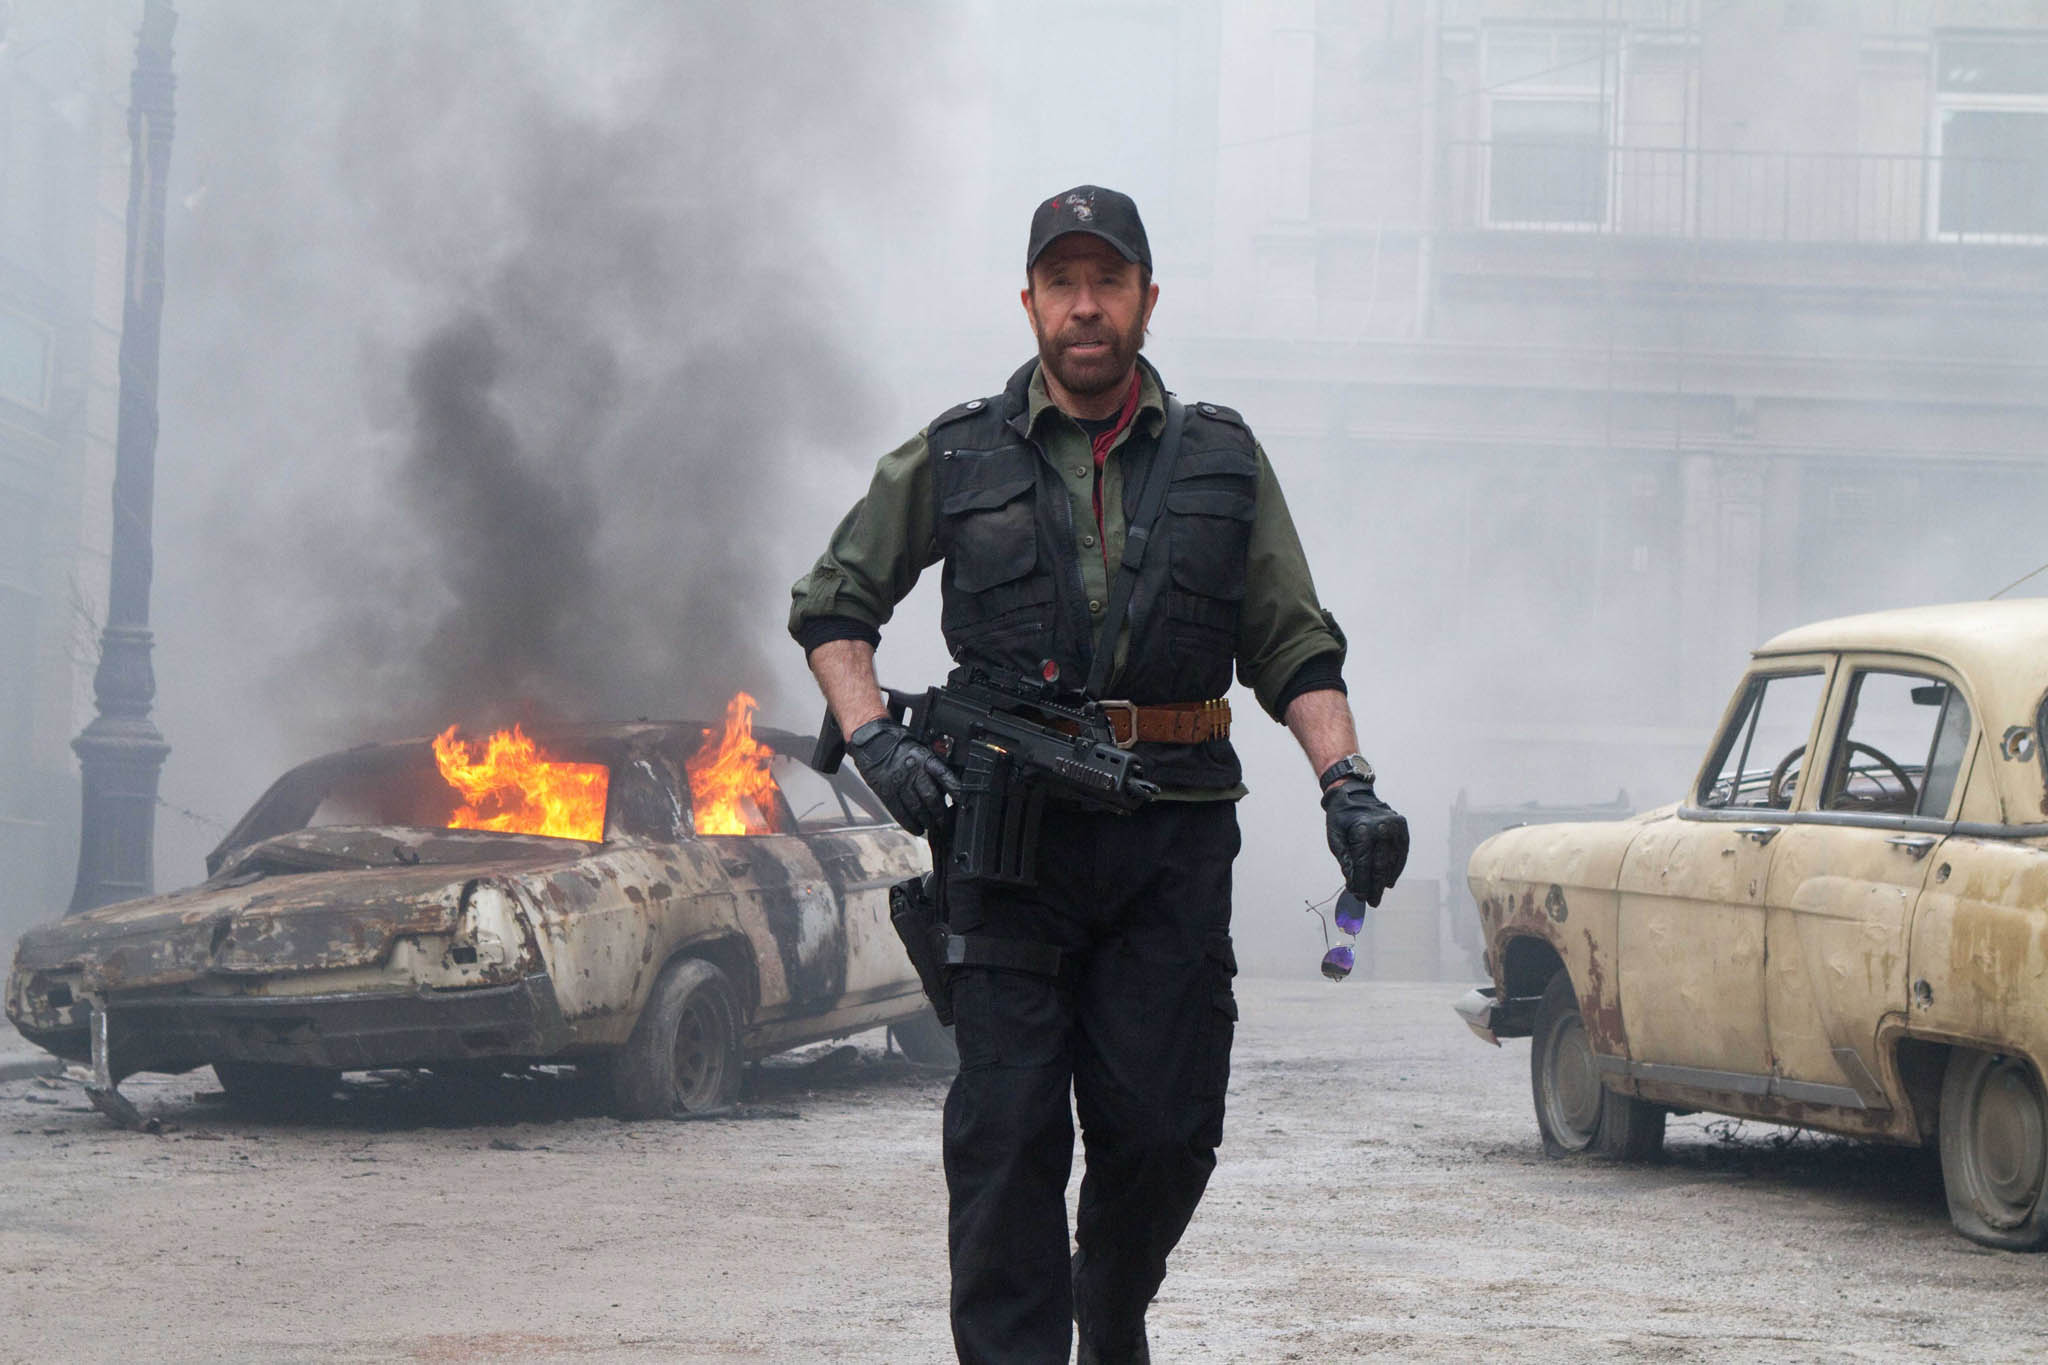 qa_chuck_norris_talks_about_expendables_2_0002-masternorris_com.jpg